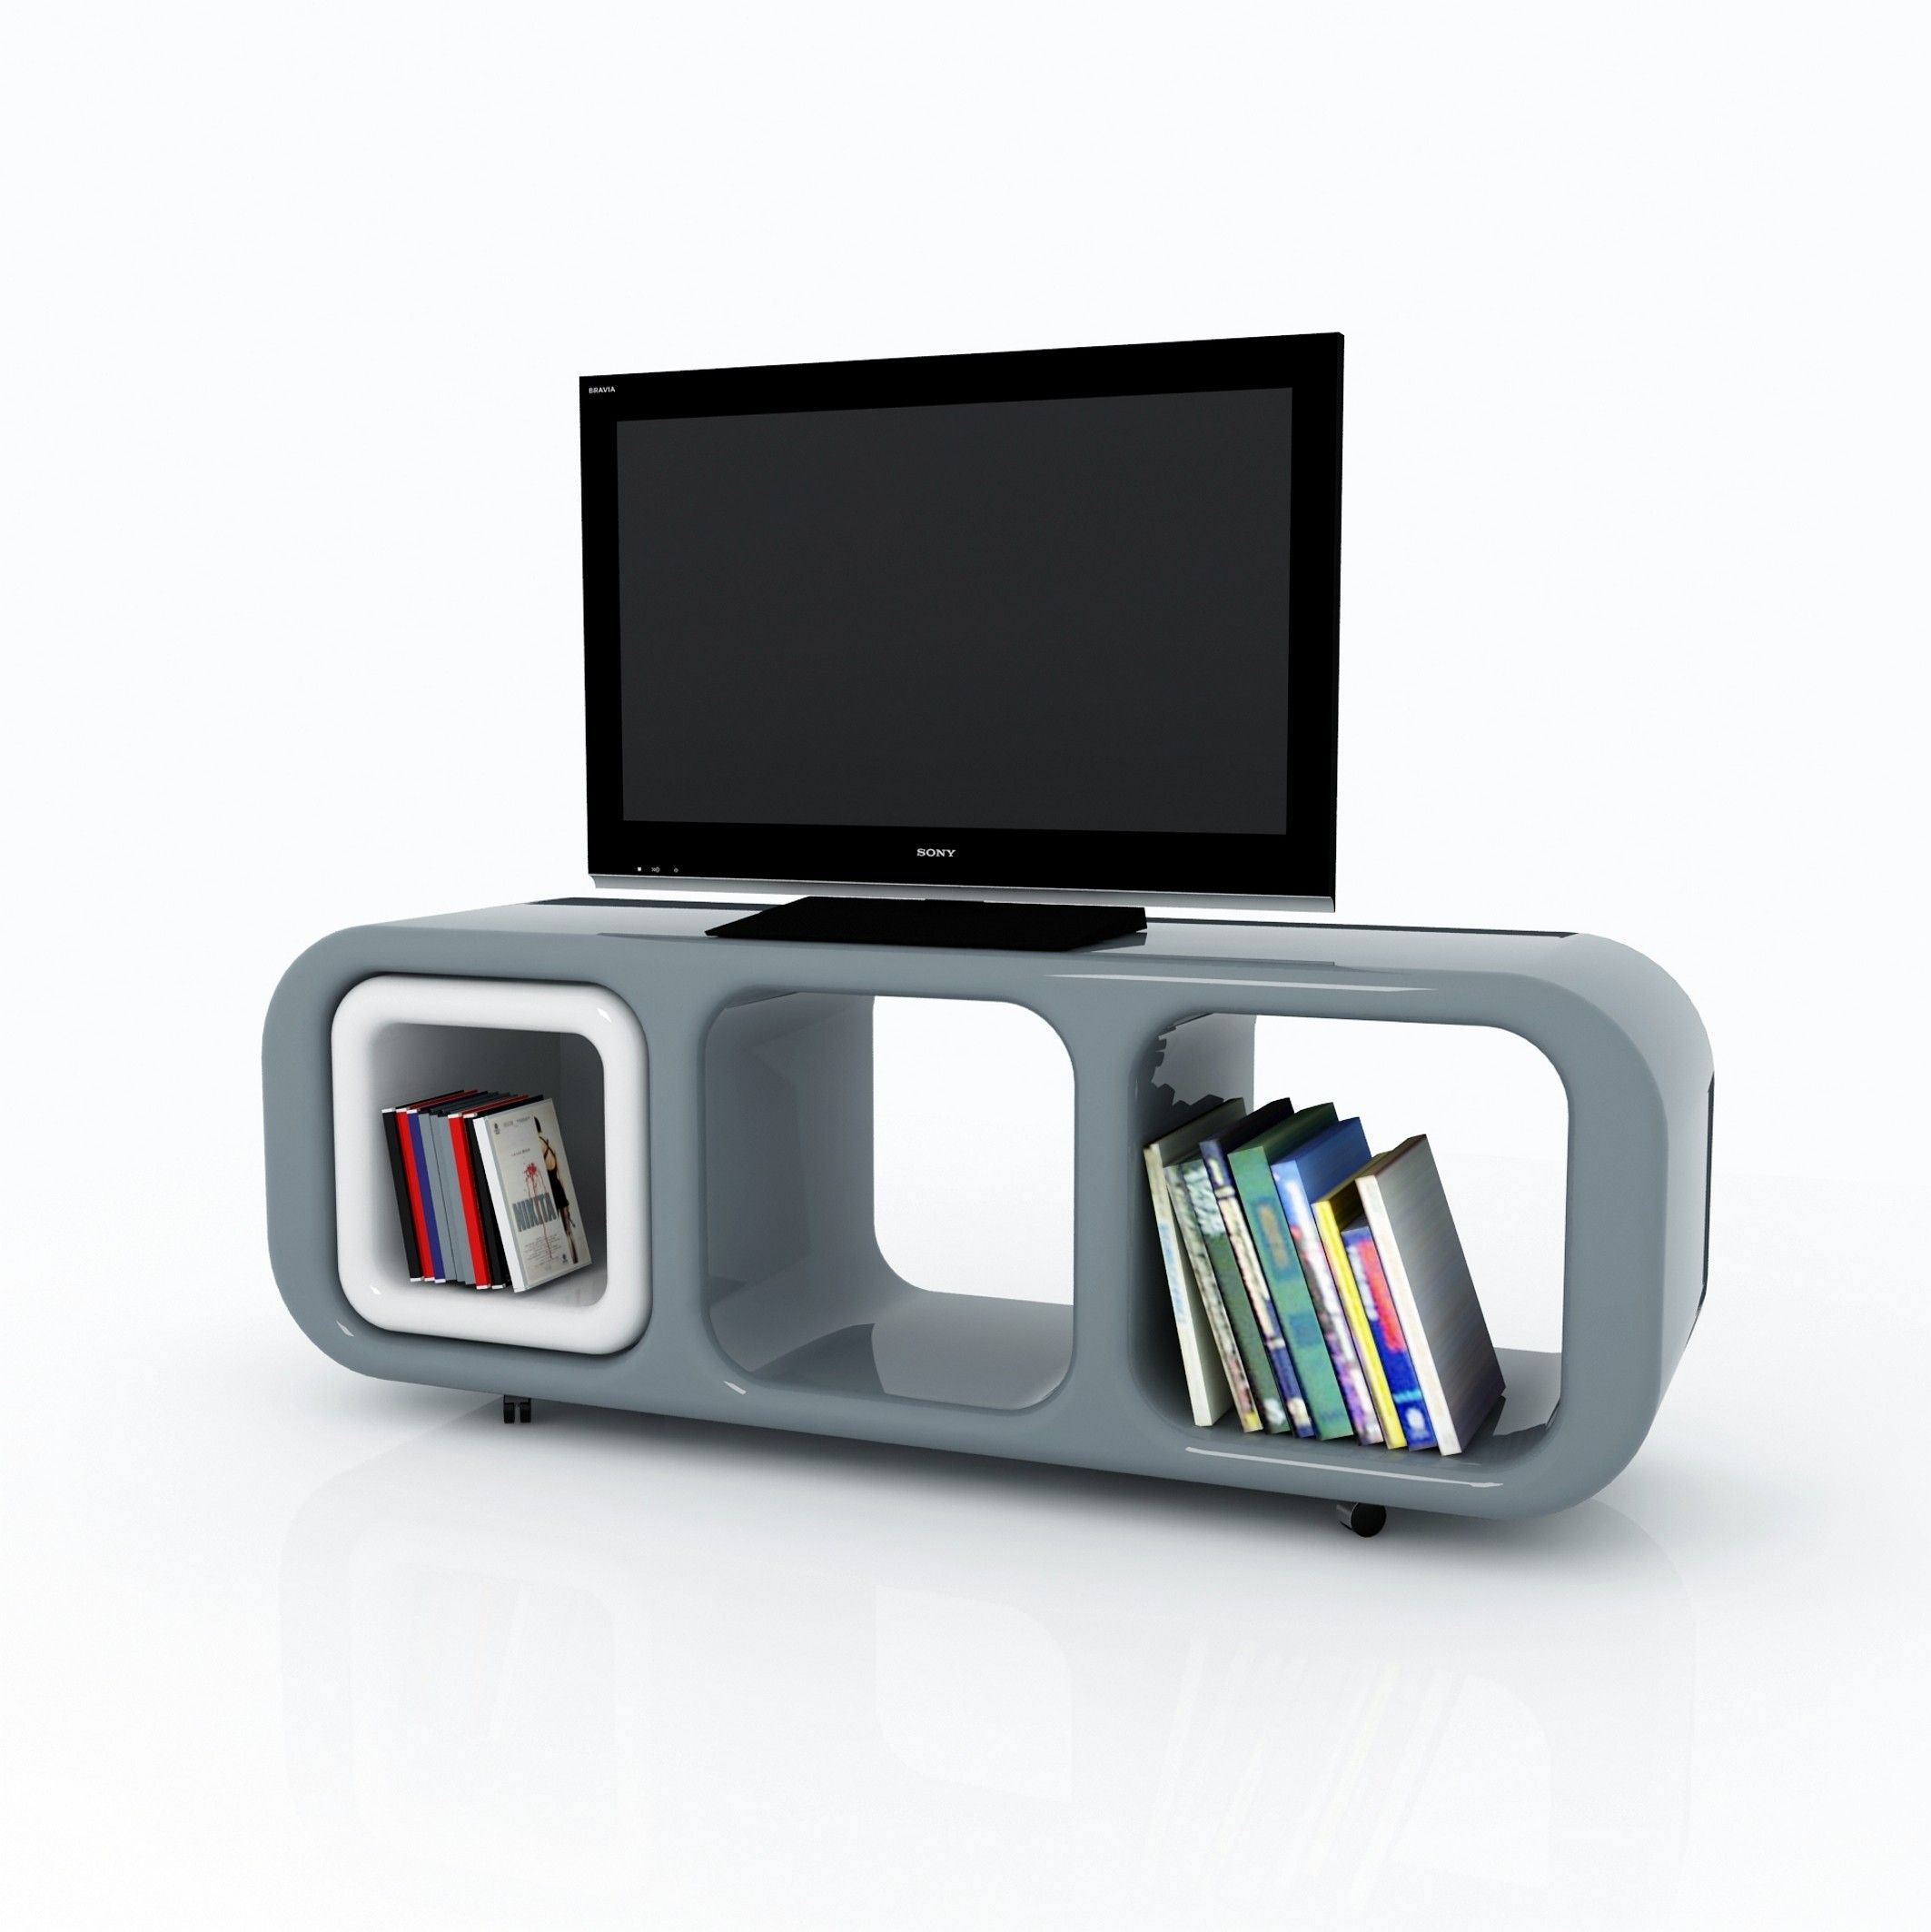 Mobile porta tv eracle design moderno su ruote in resina for Design moderno